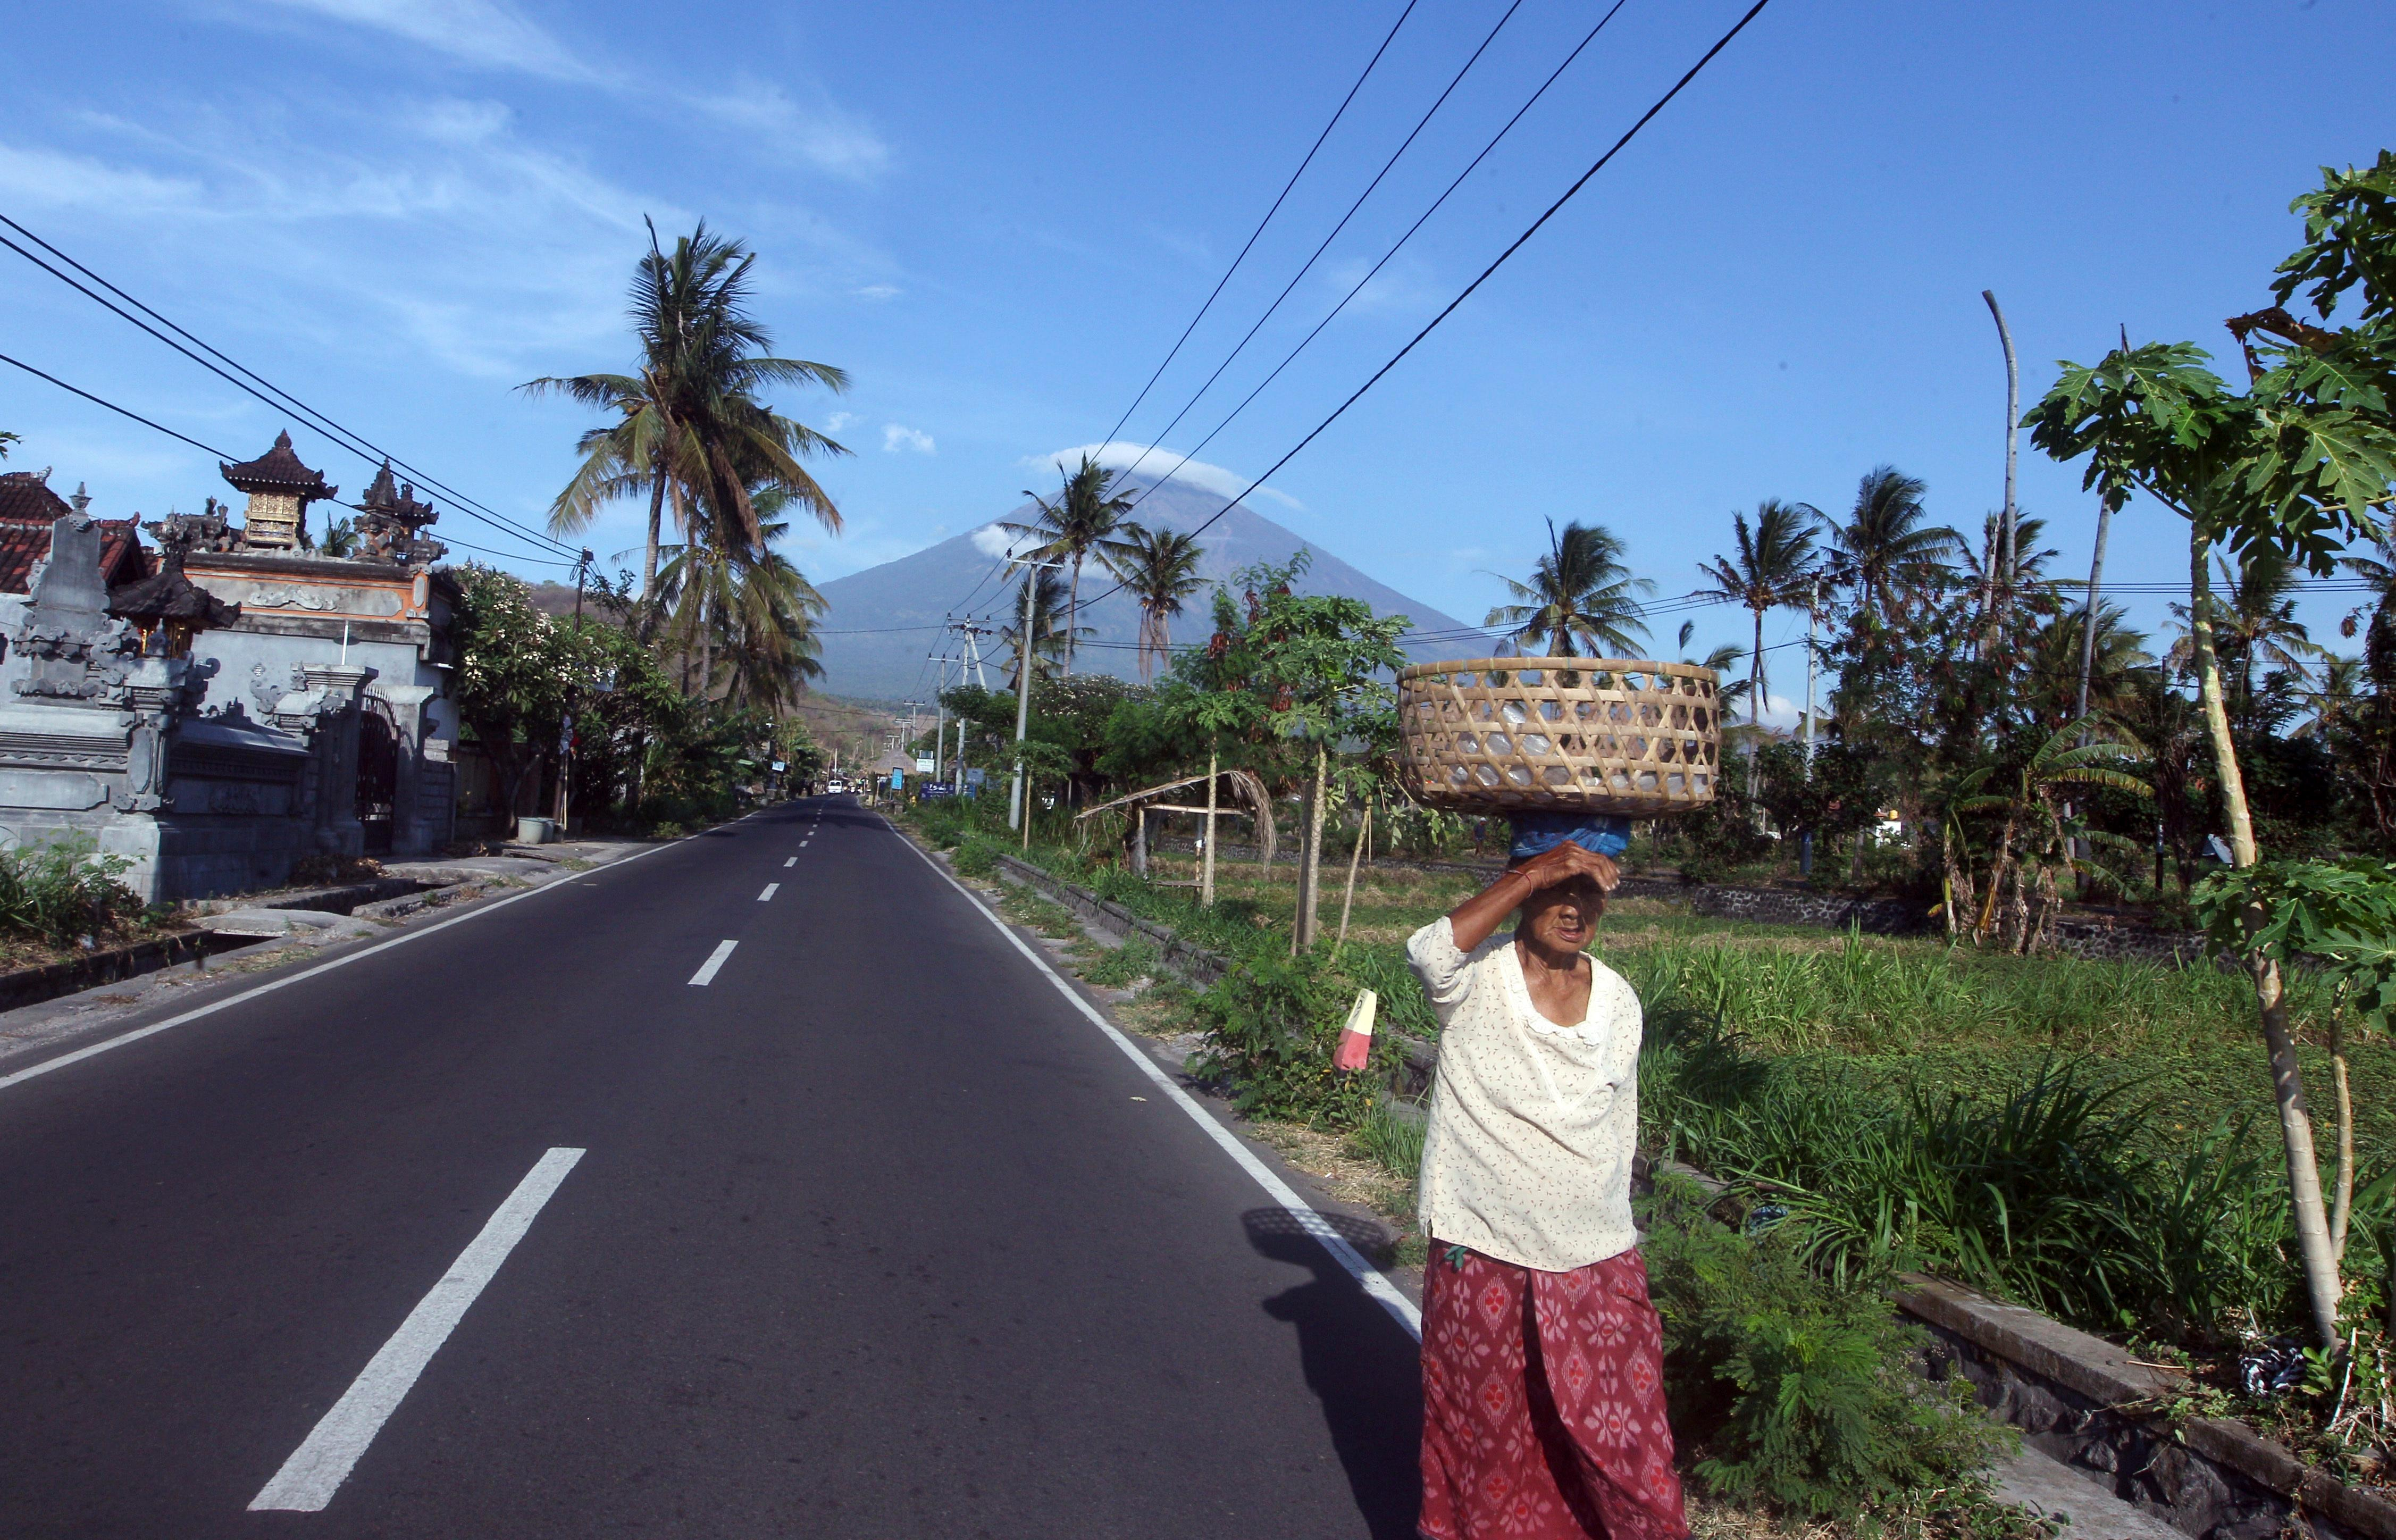 UPDATES CAPTION - A woman walks on a street with Mount Agung seen in the background in Amed, Bali, Indonesia, Tuesday, Sept. 26, 2017. More than 57,000 people have fled the surrounds of Mount Agung volcano on the Indonesian tourist island of Bali, fearing an imminent eruption, officials said Tuesday. (AP Photo/Firdia Lisnawati)